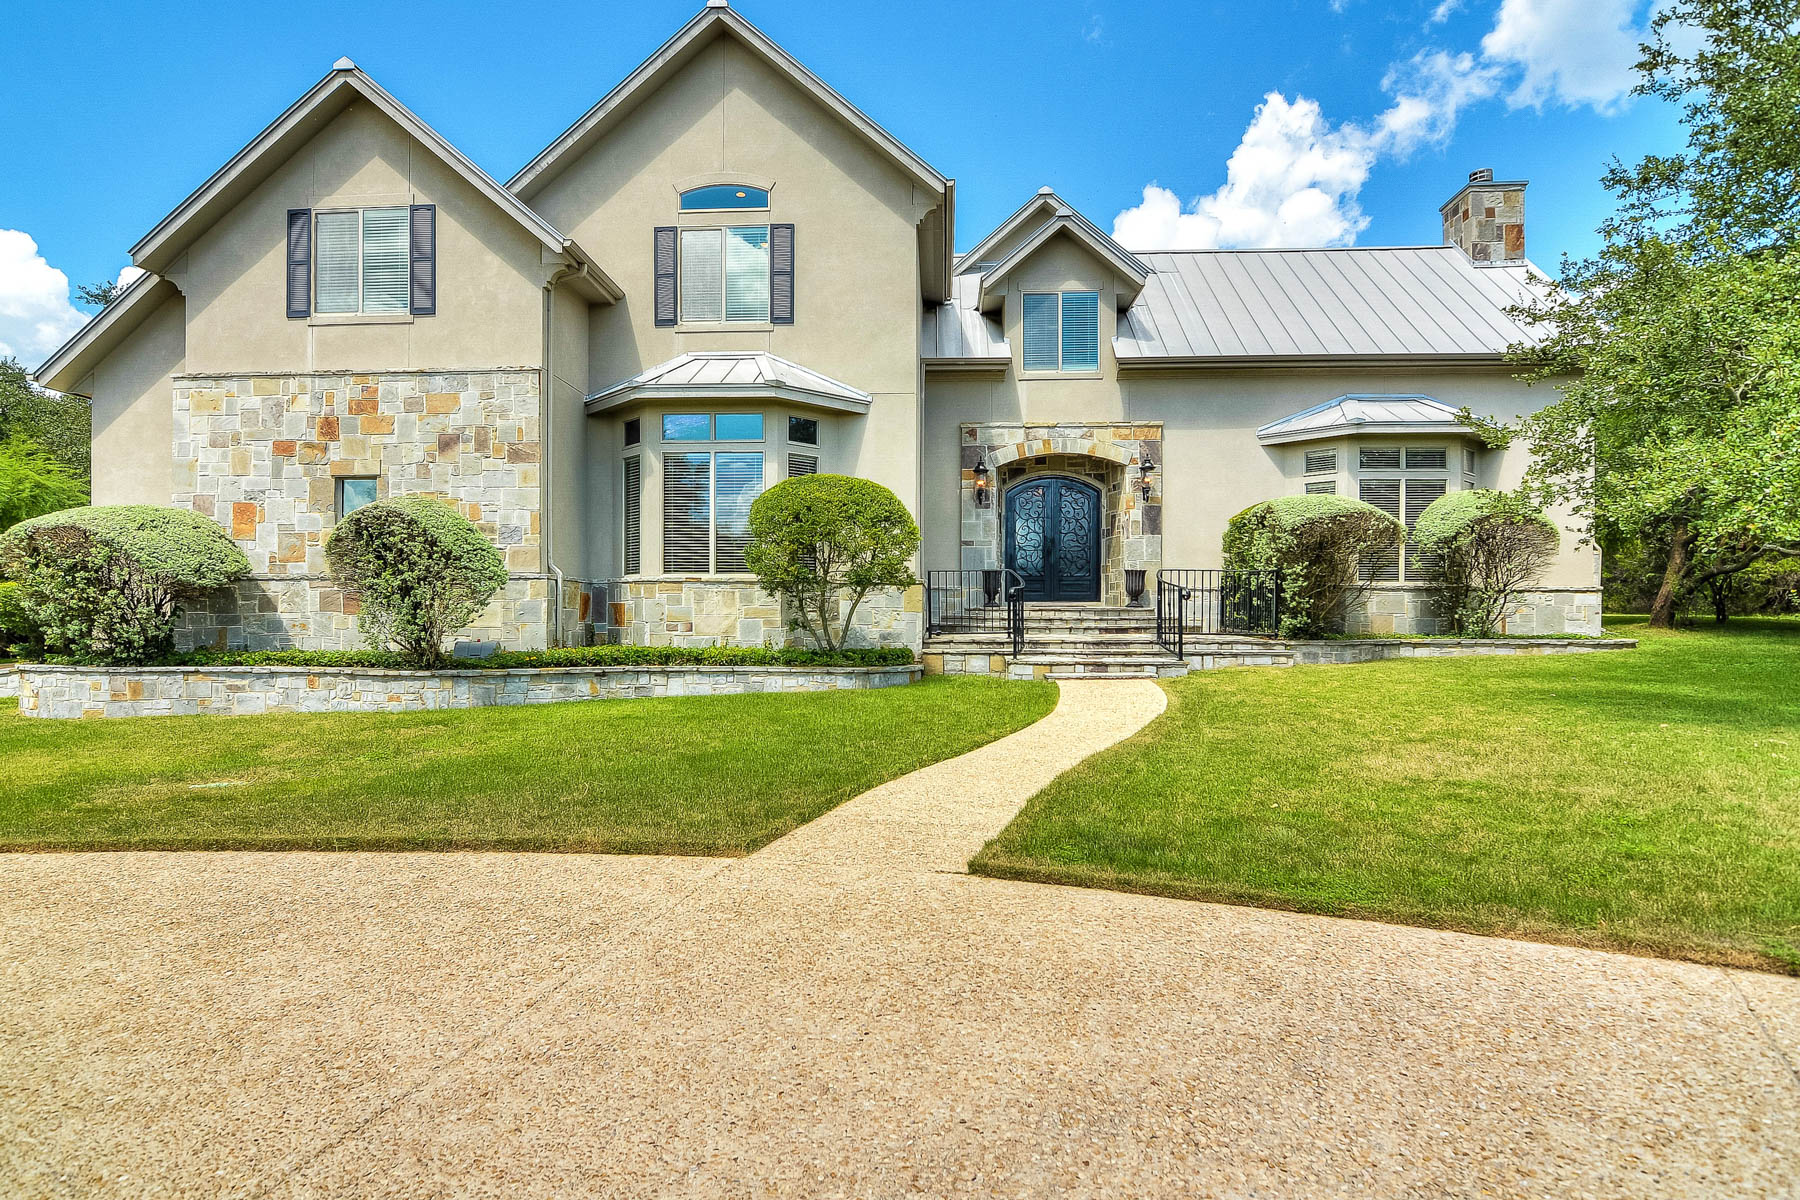 Single Family Home for Sale at Sophisticated Modern Living 23114 Fossil Peak Fossil Ridge, San Antonio, Texas, 78261 United States